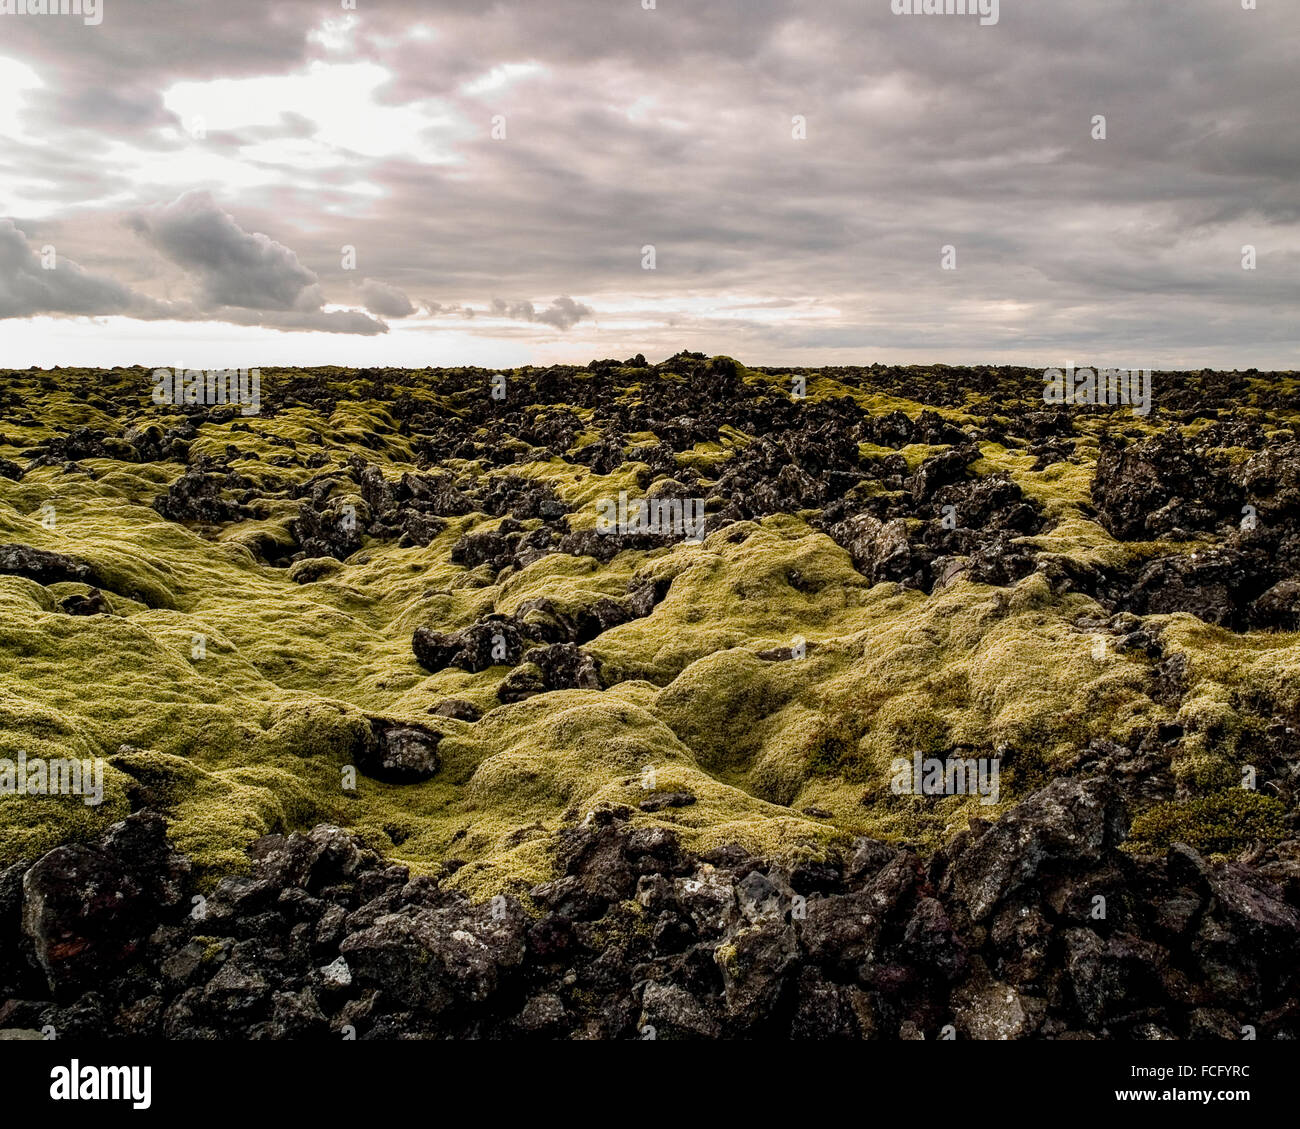 Green moss covering black lava rock in a large field just outside of the Blue Lagoon Spa near Keflavik in Iceland. Stock Photo